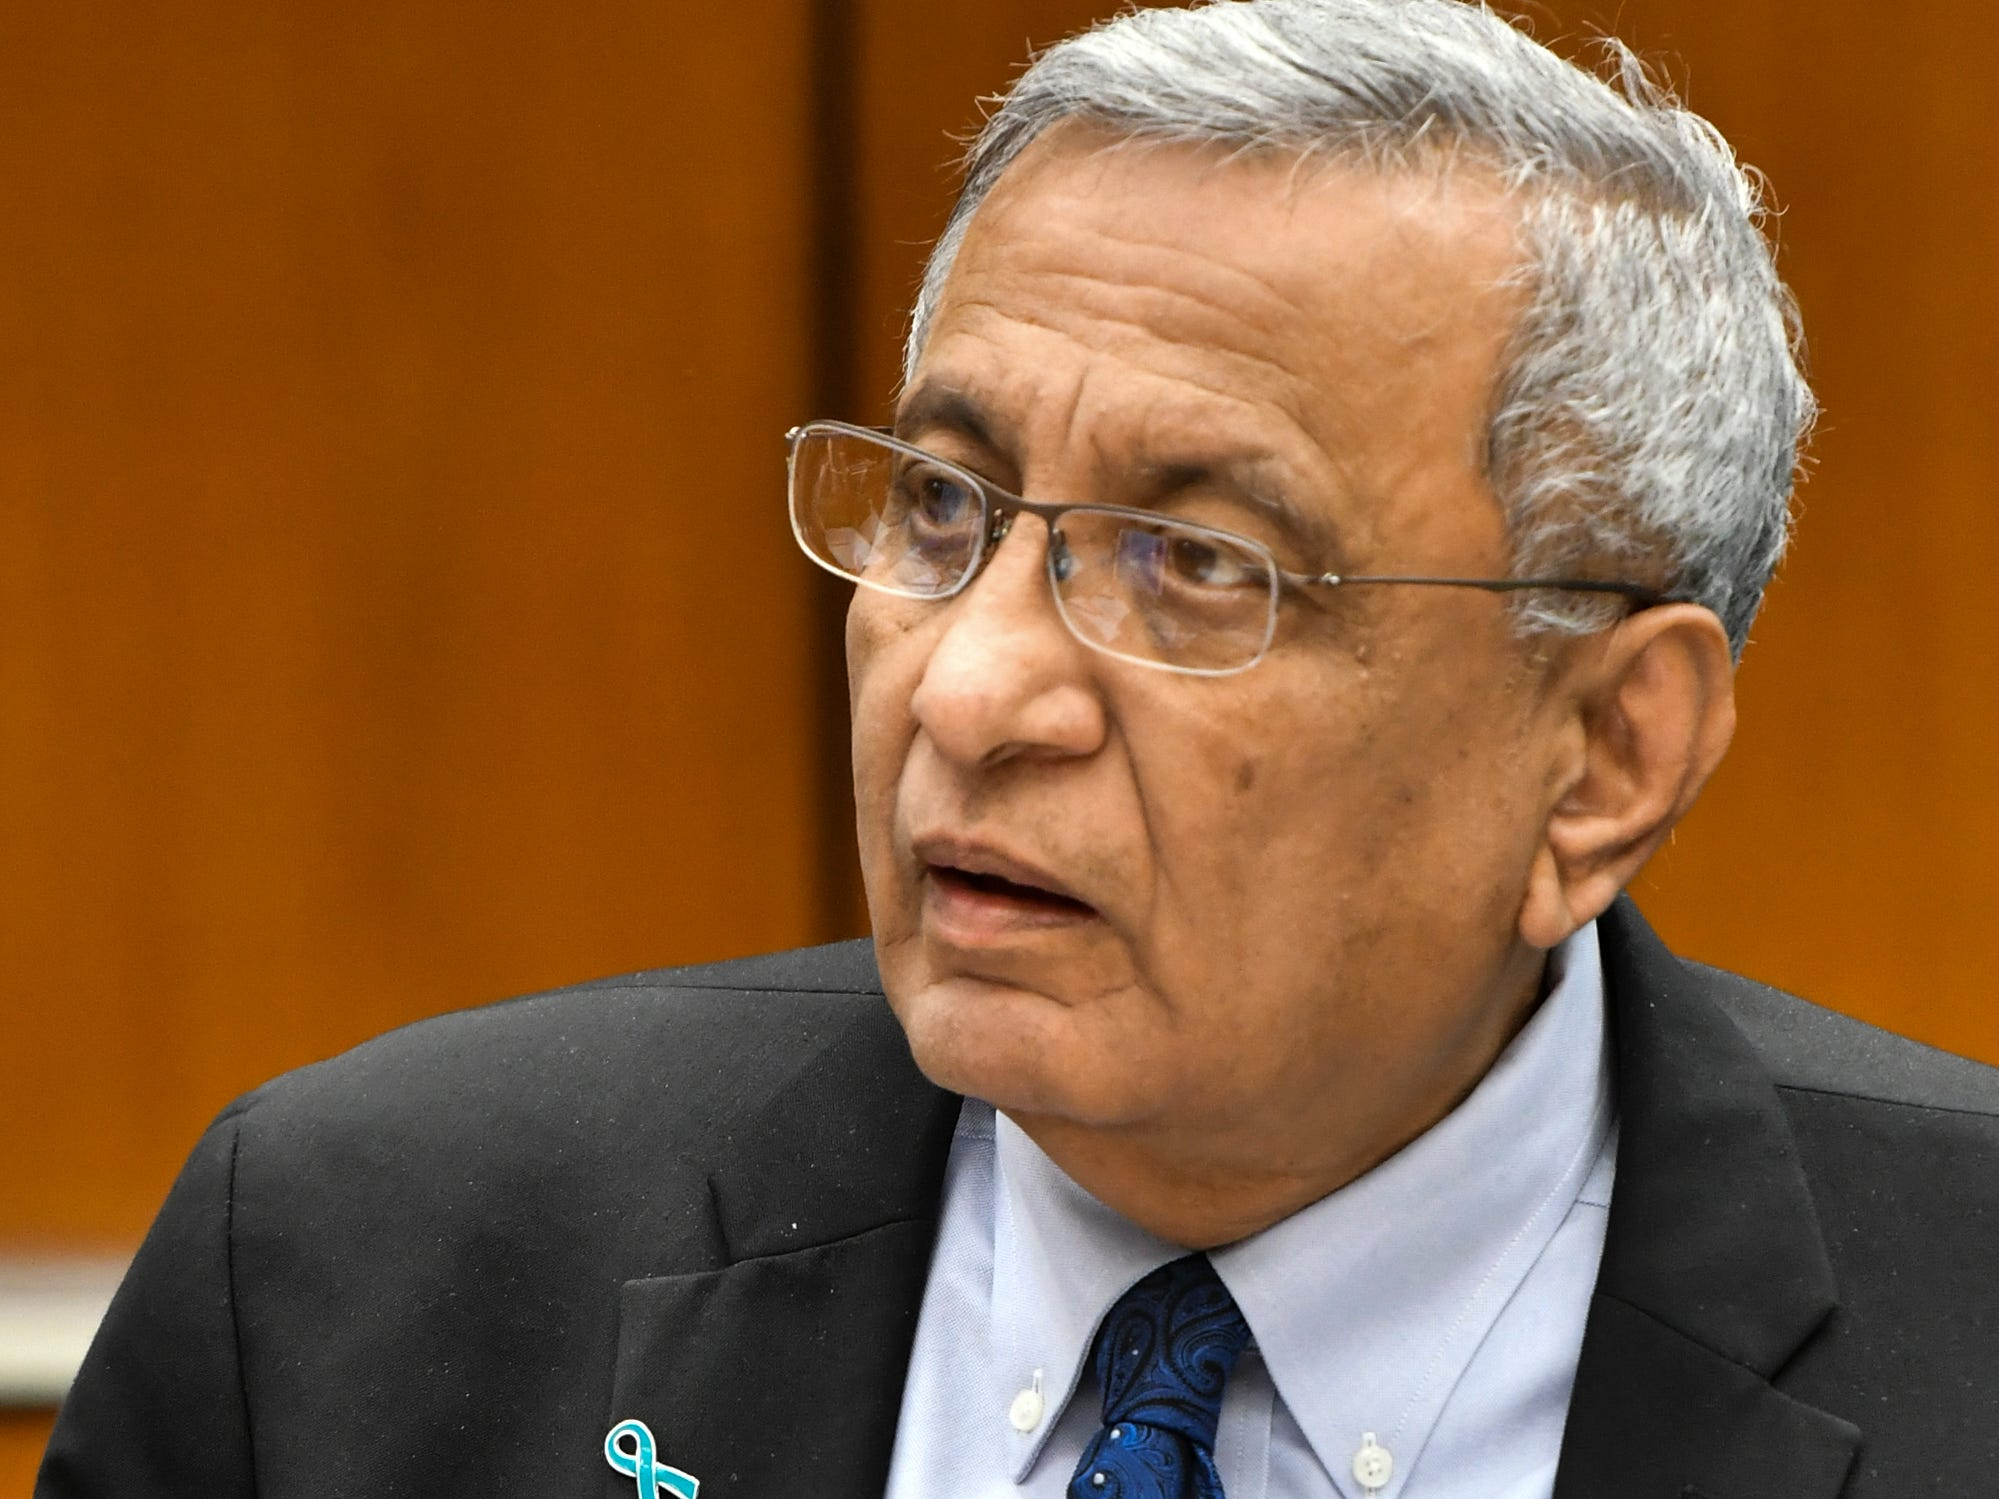 MSU interim President Satish Udpa made a formal apology to victims of former MSU and USA gymnastics doctor Larry Nassar, Friday, Feb. 15, 2019, at the Board of Trustees meeting in the Hannah Administration building.  His apology was followed with applause.